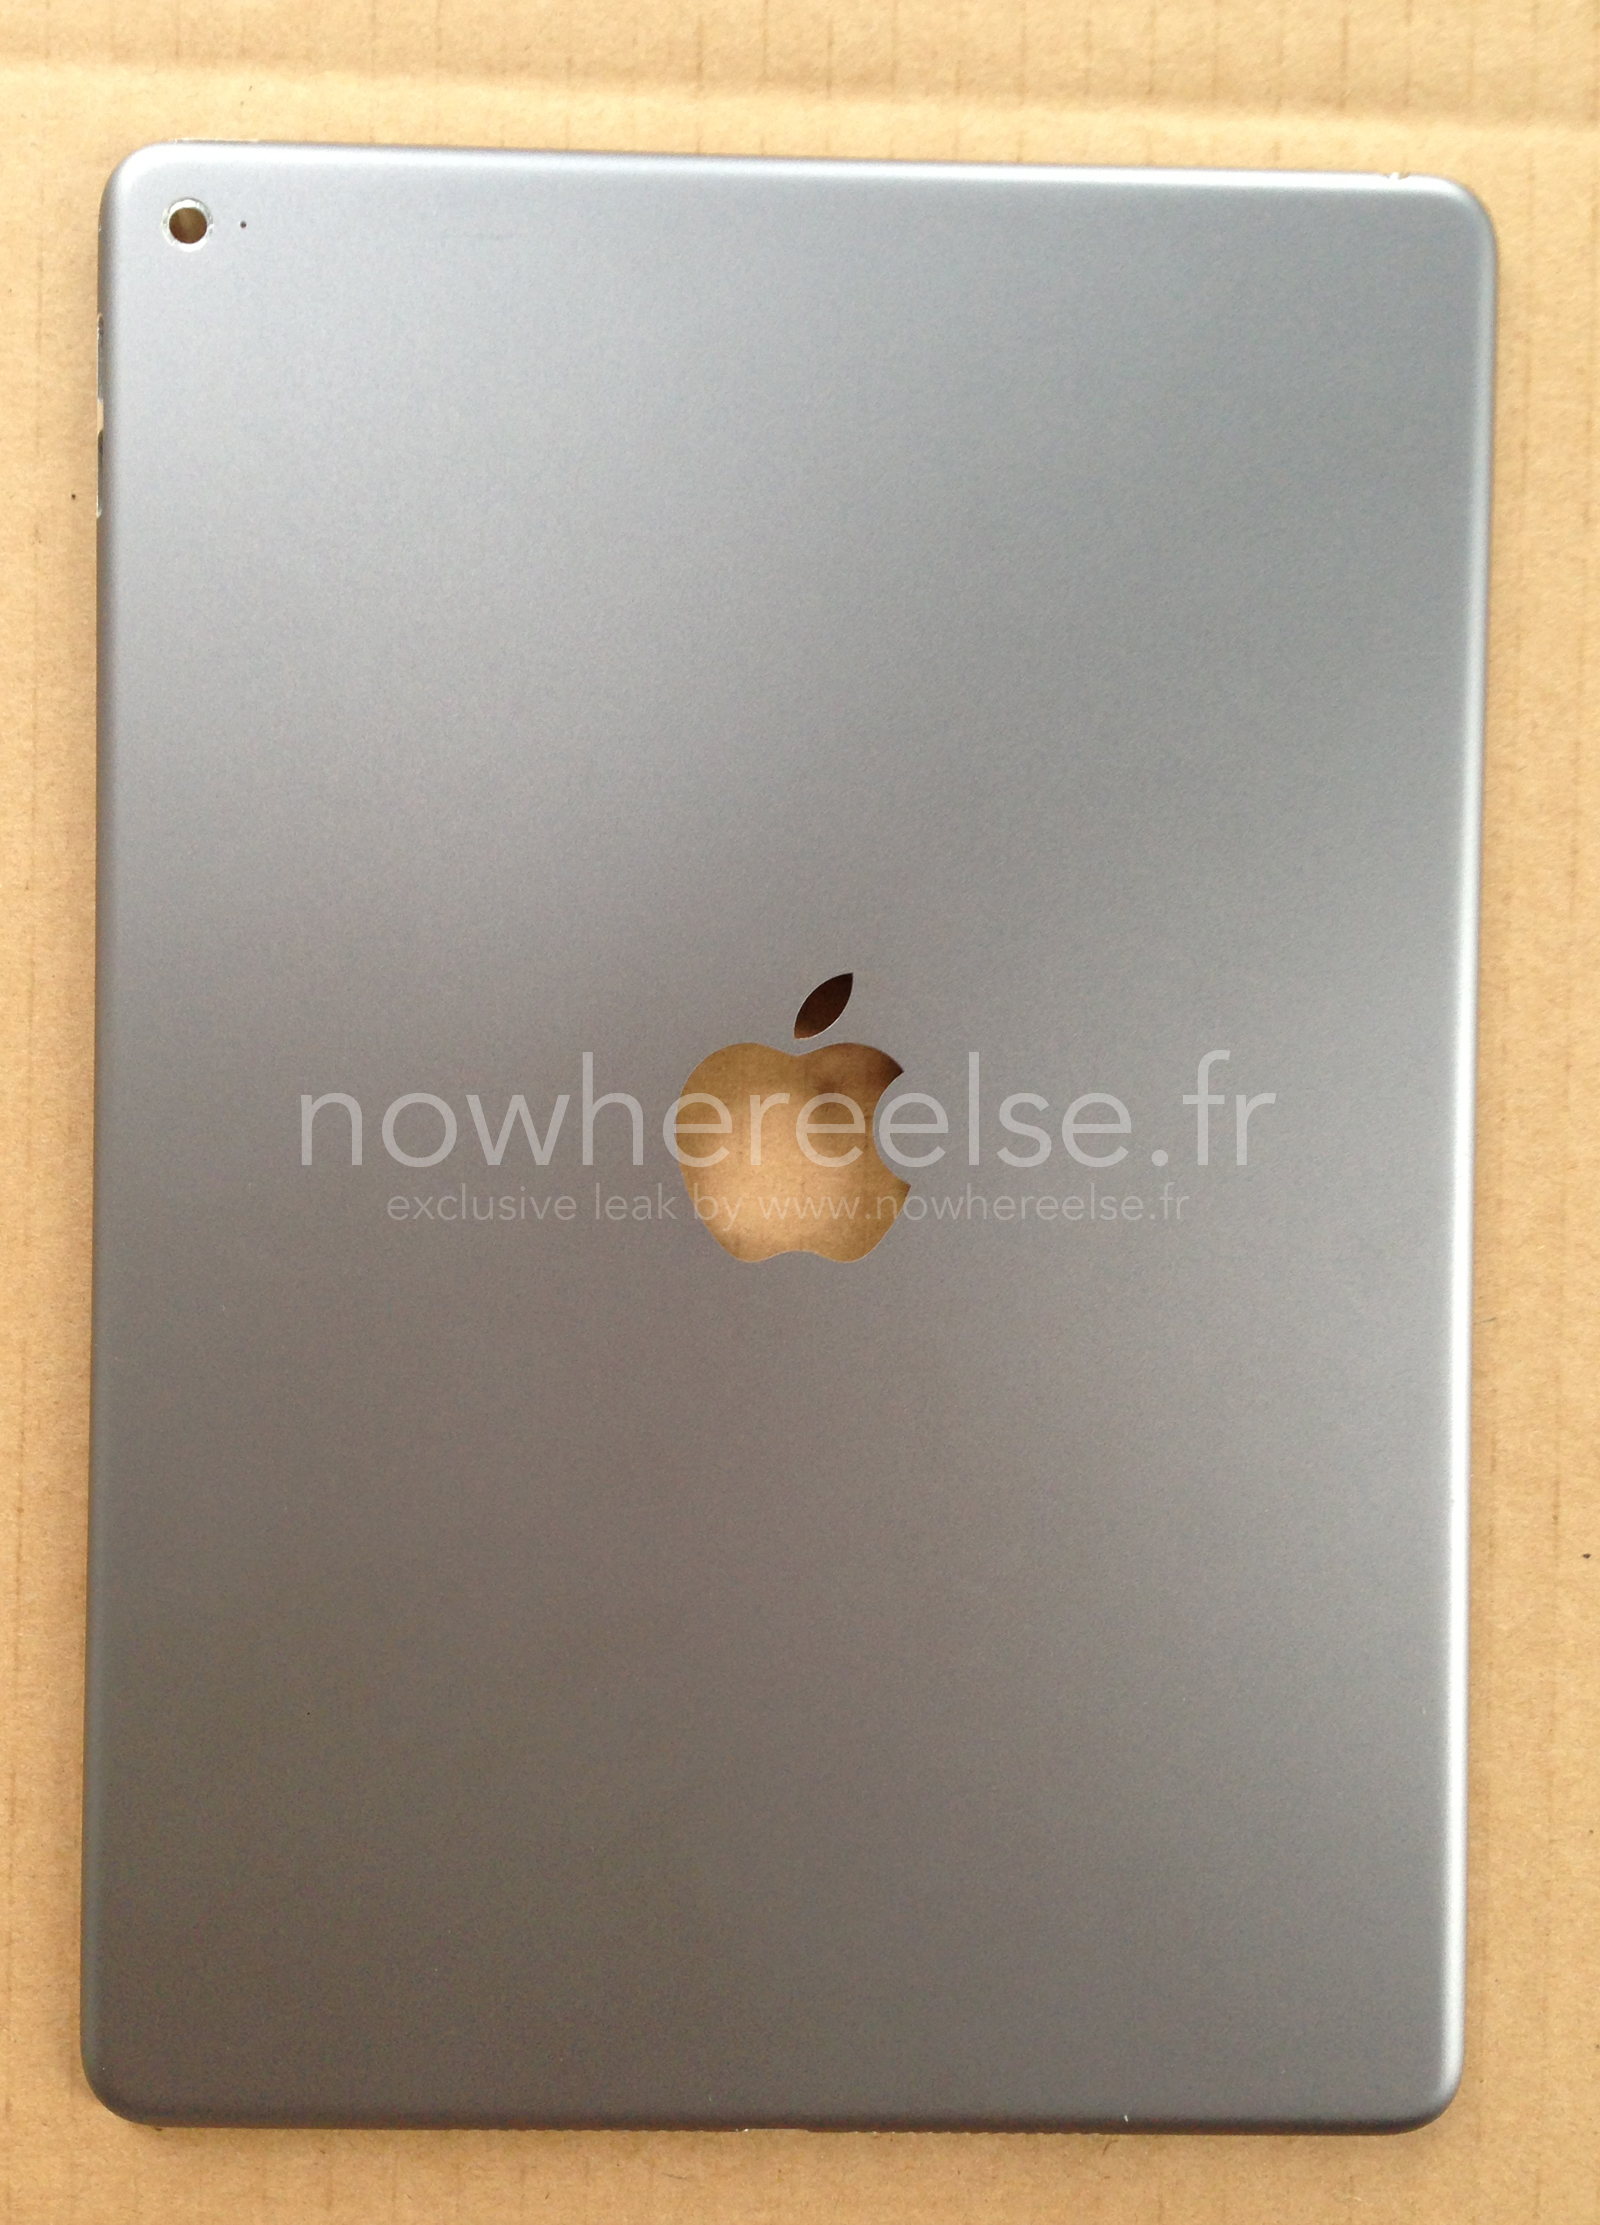 Next-gen iPad Air rear shell shown up close in major new leak